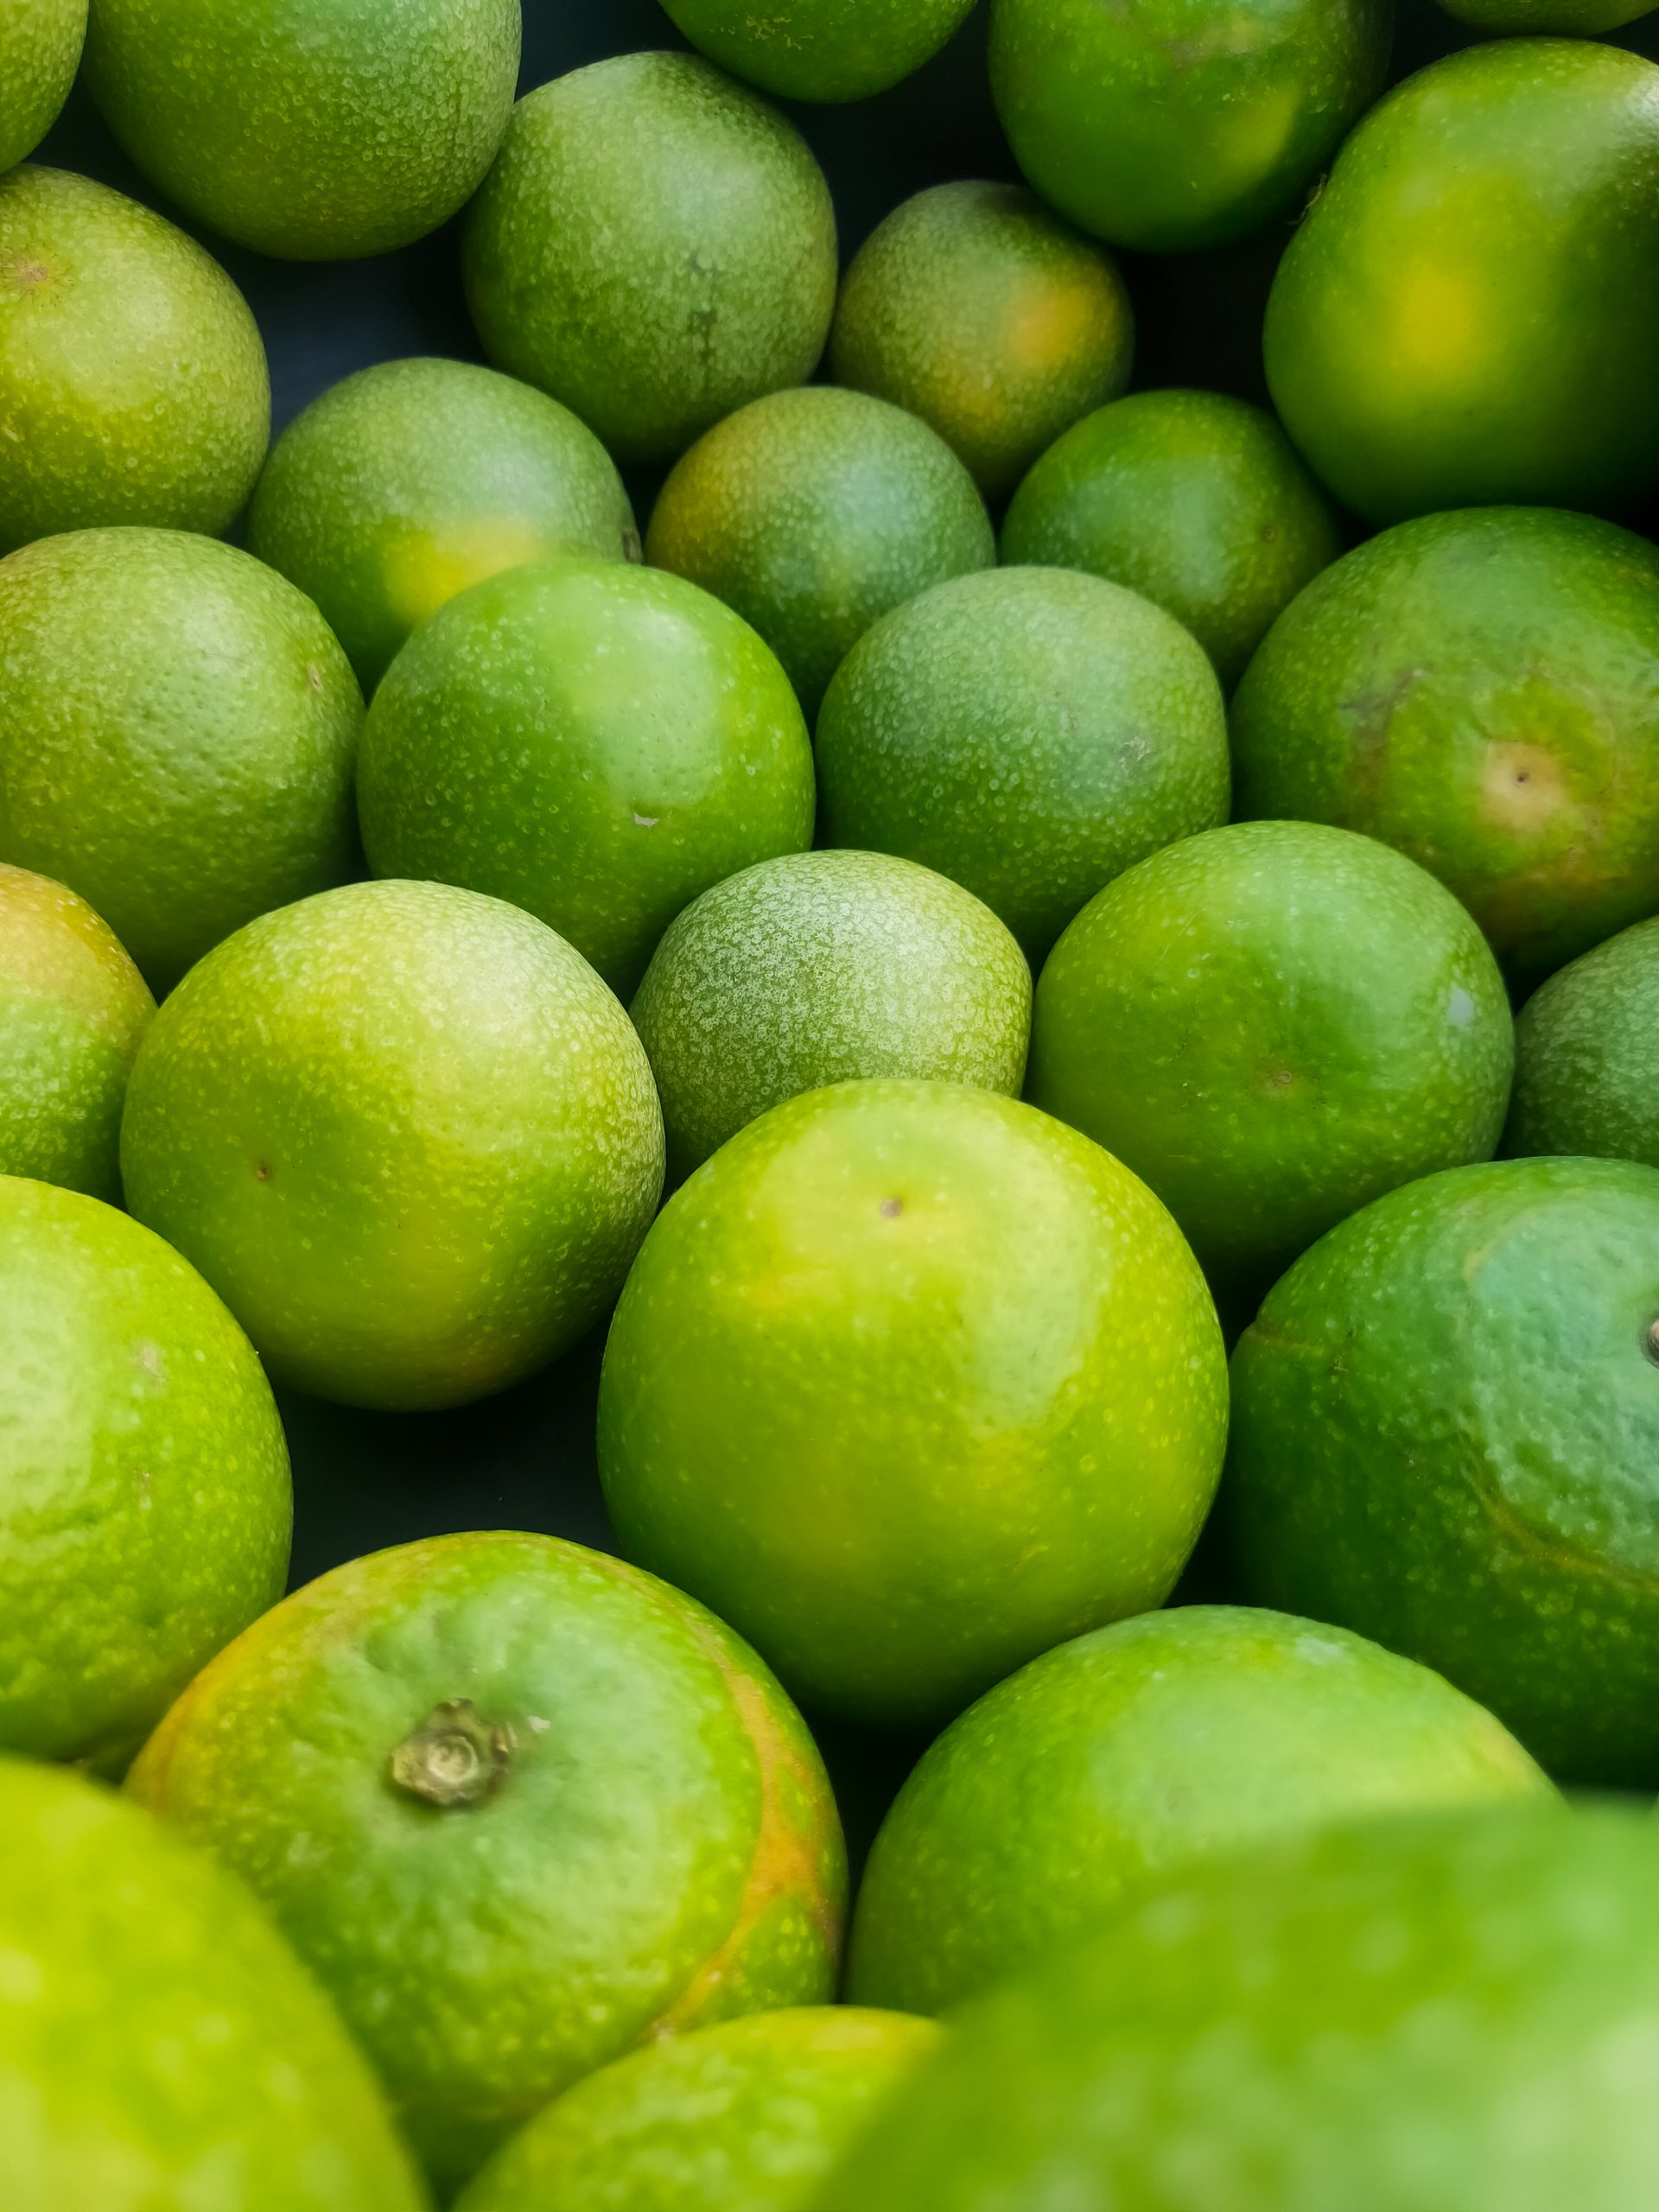 A pile of lime fruits